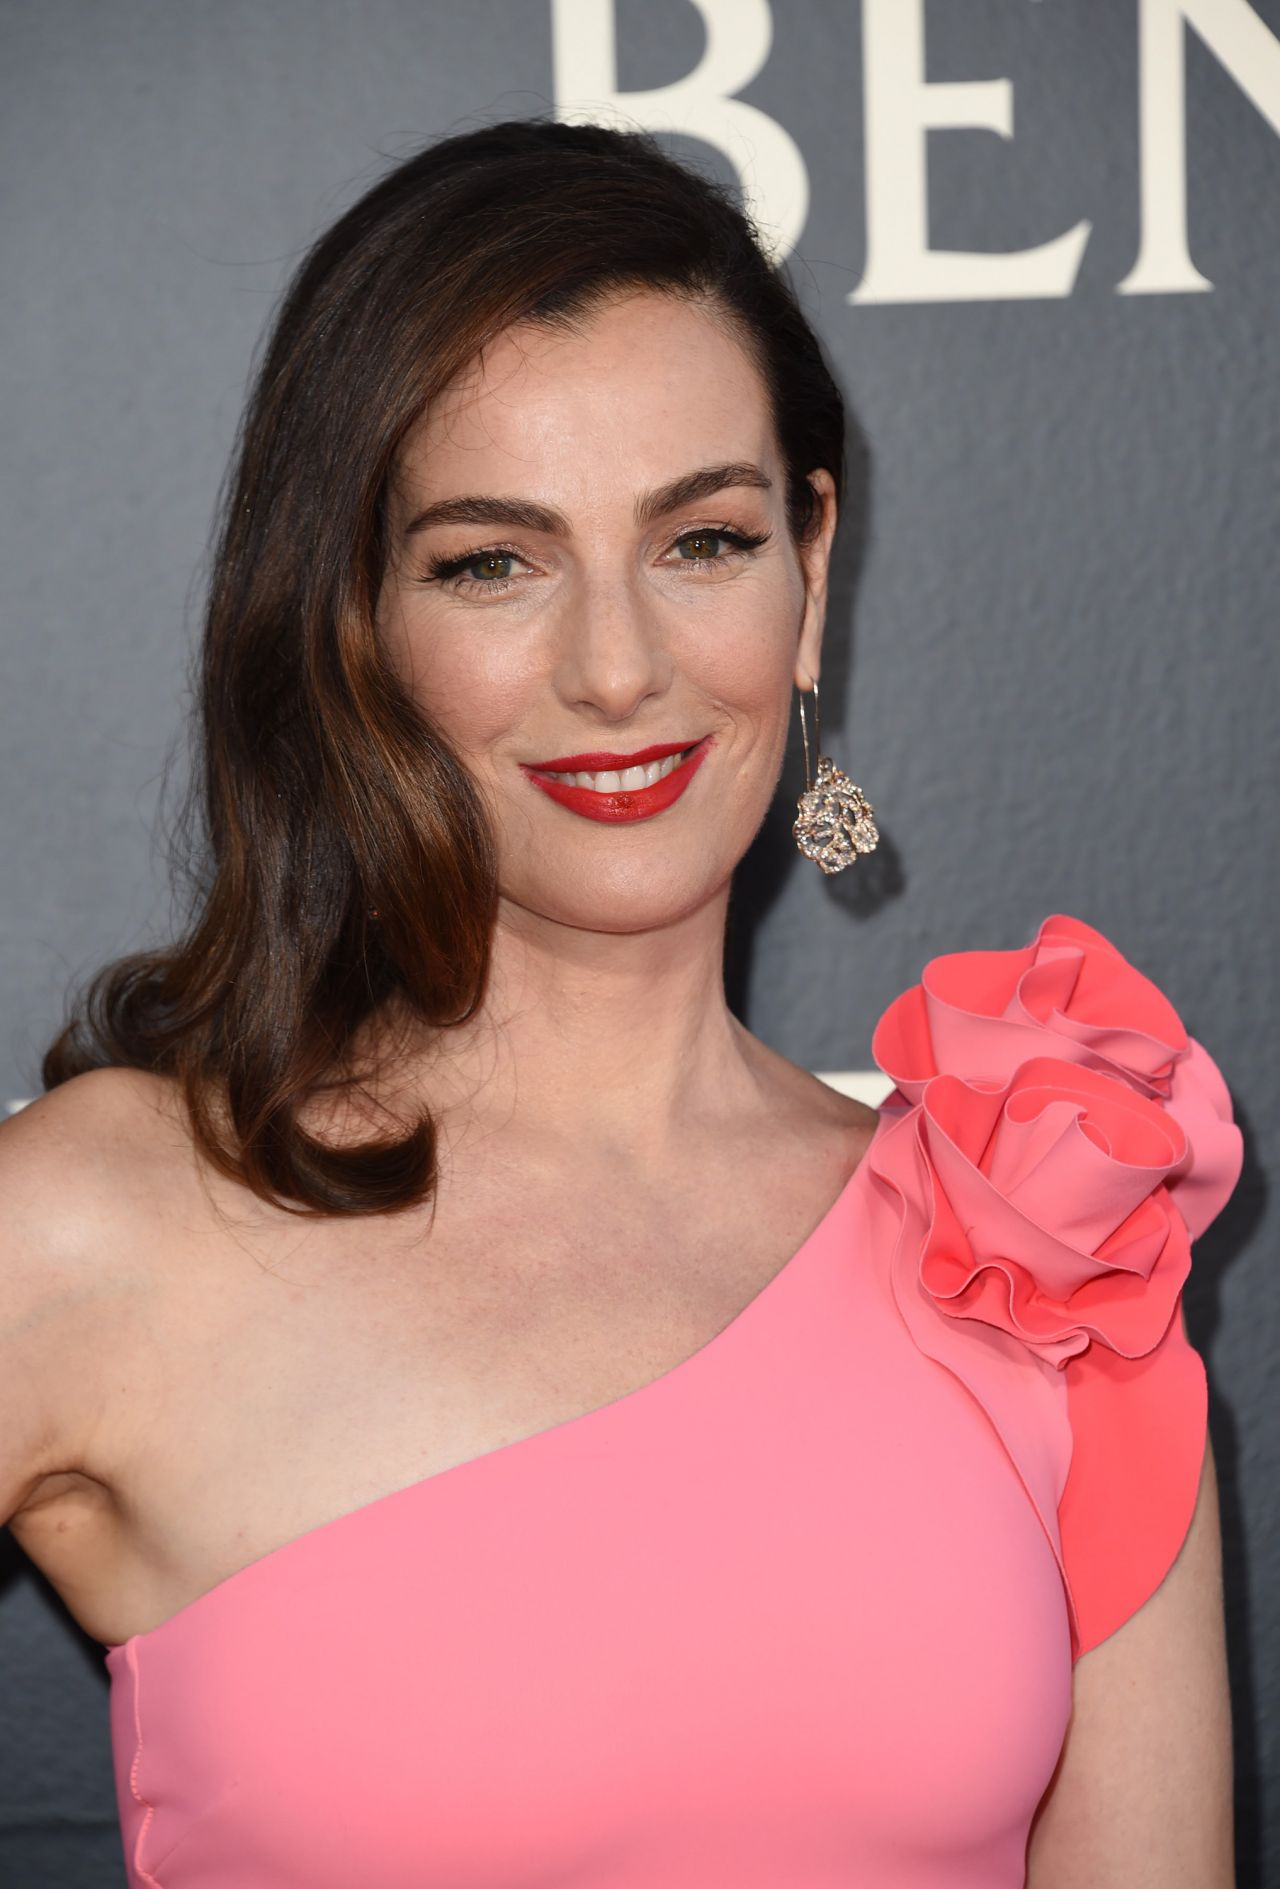 Ayelet Zurer Latest Photos Celebmafia